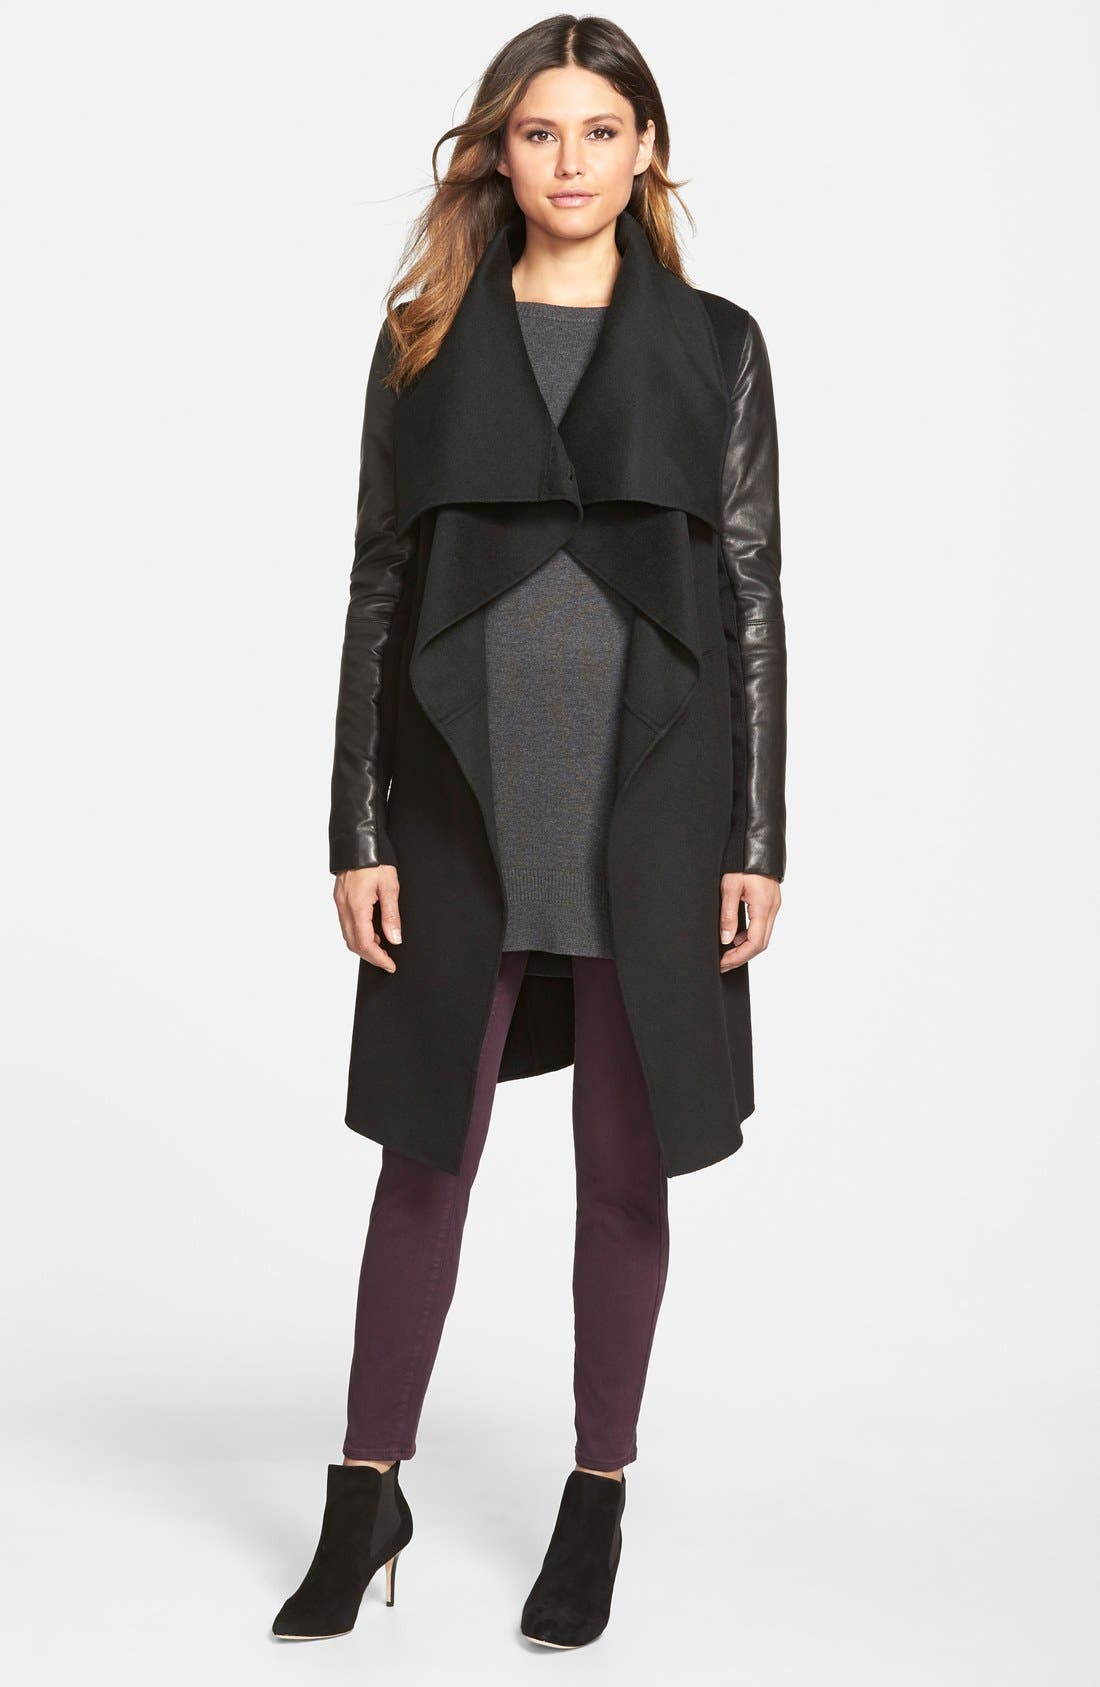 Wool jacket with leather sleeves